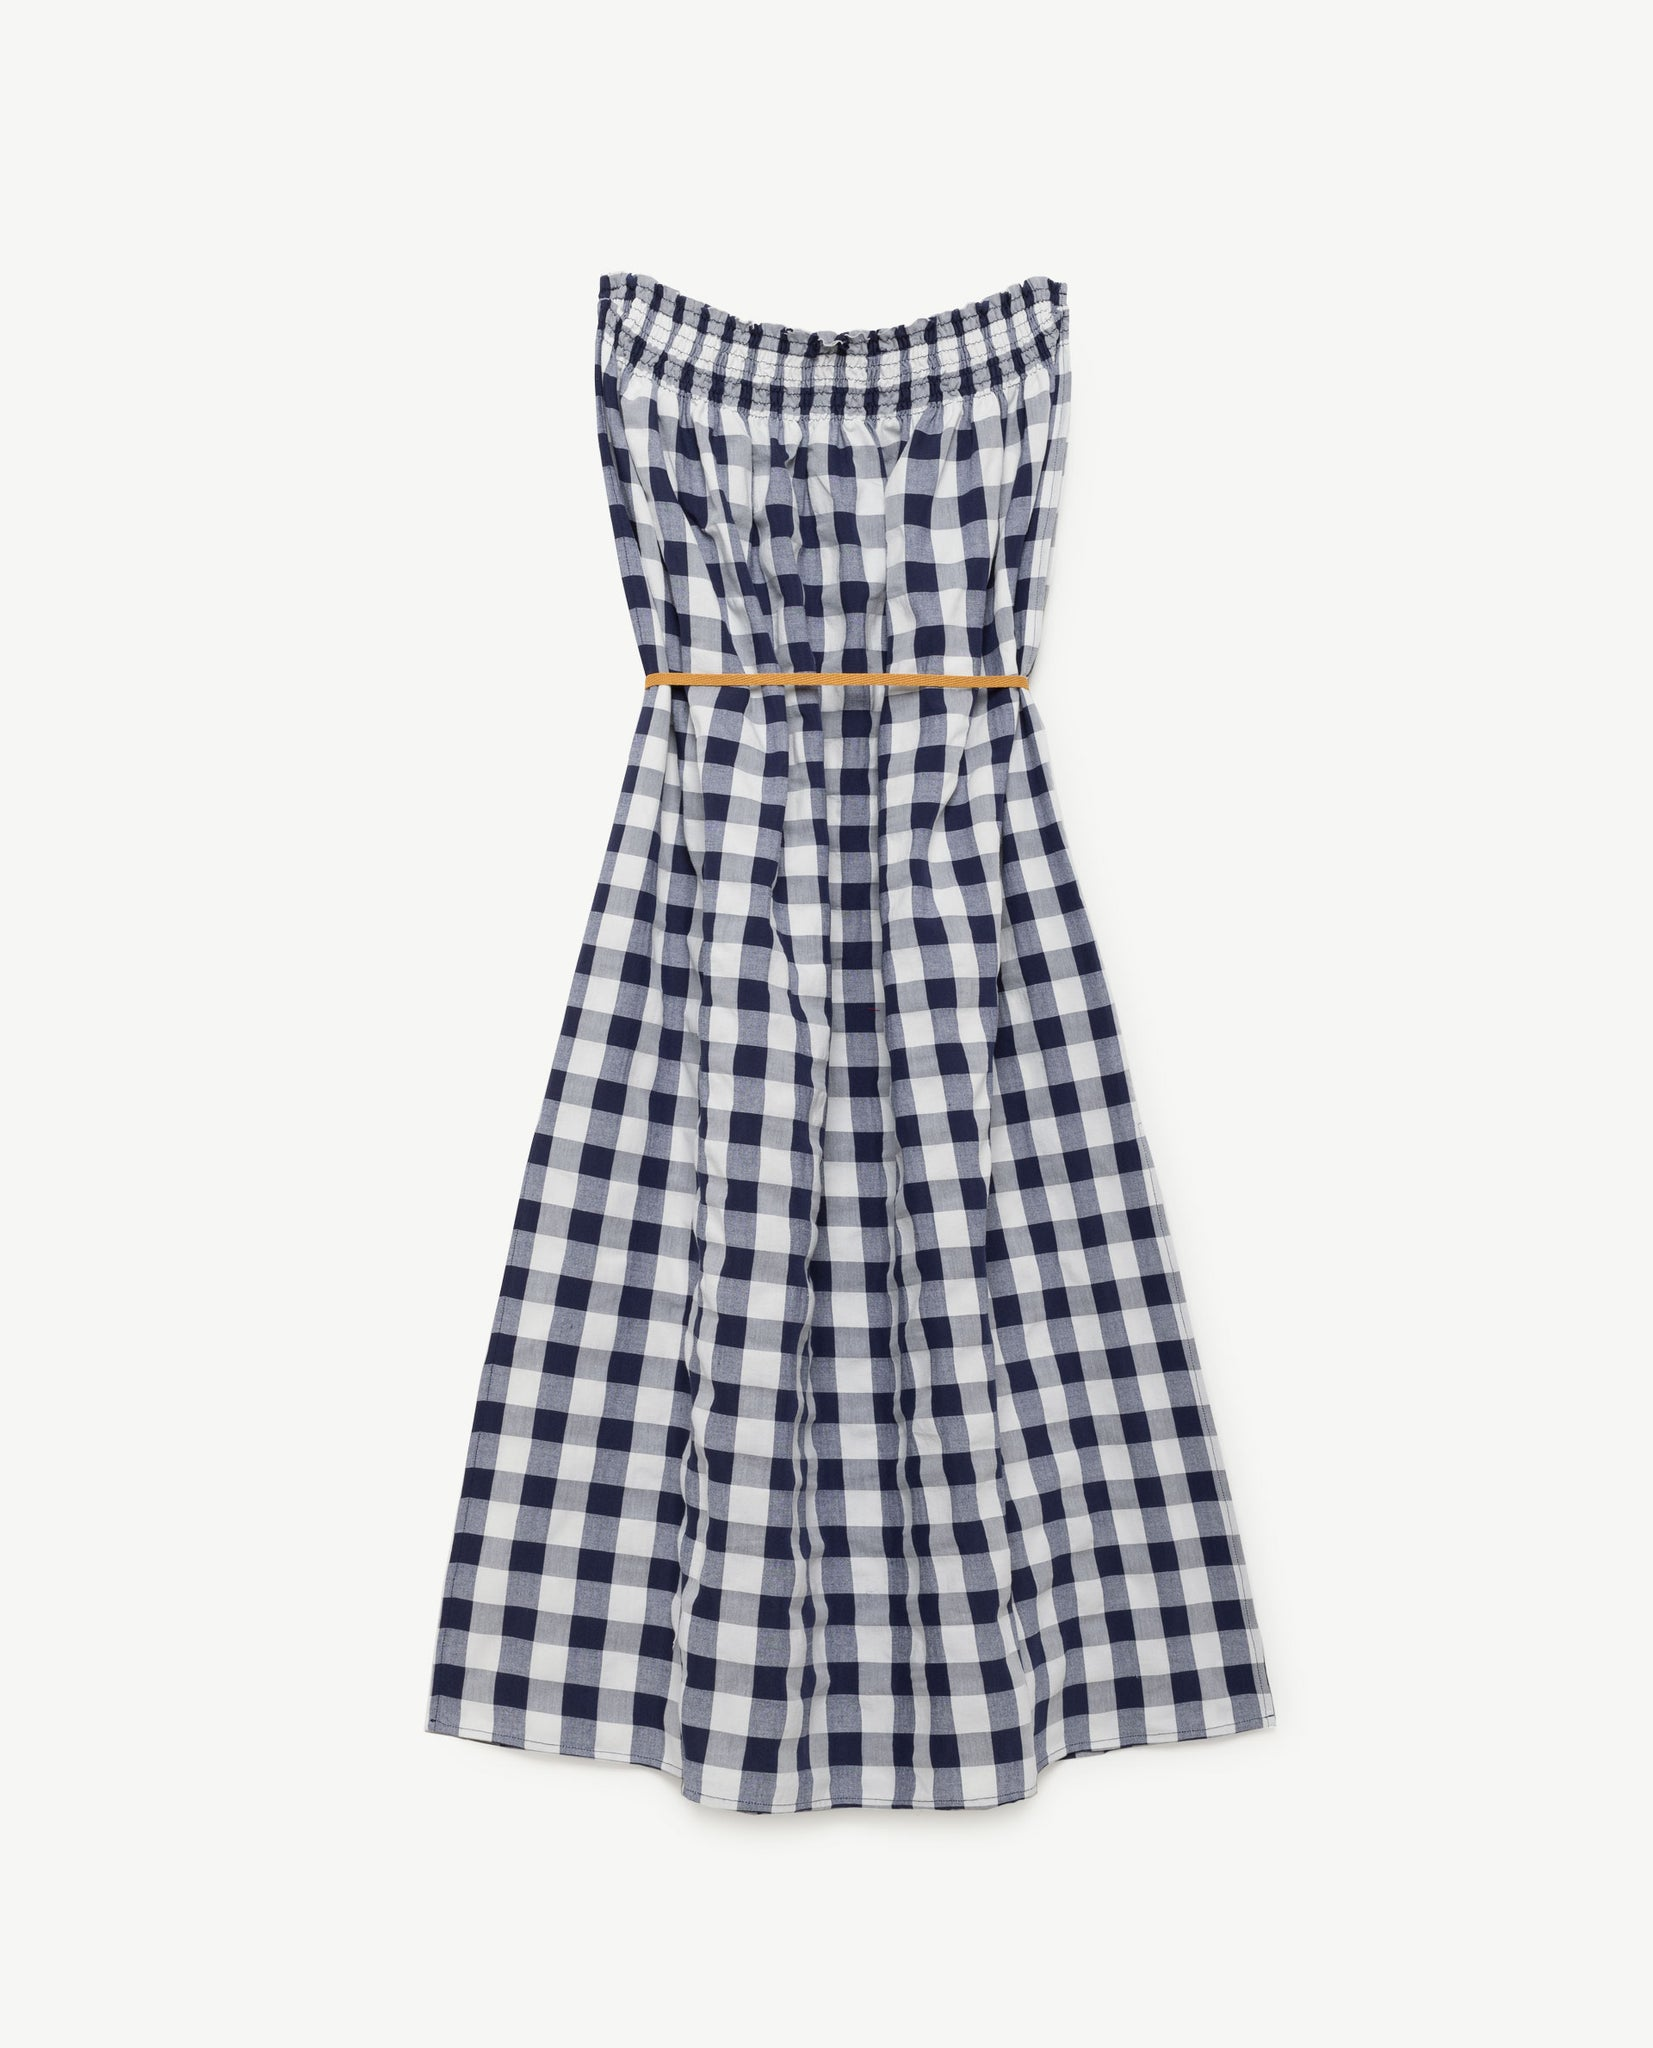 Dolphin kids dress - navy blue peach